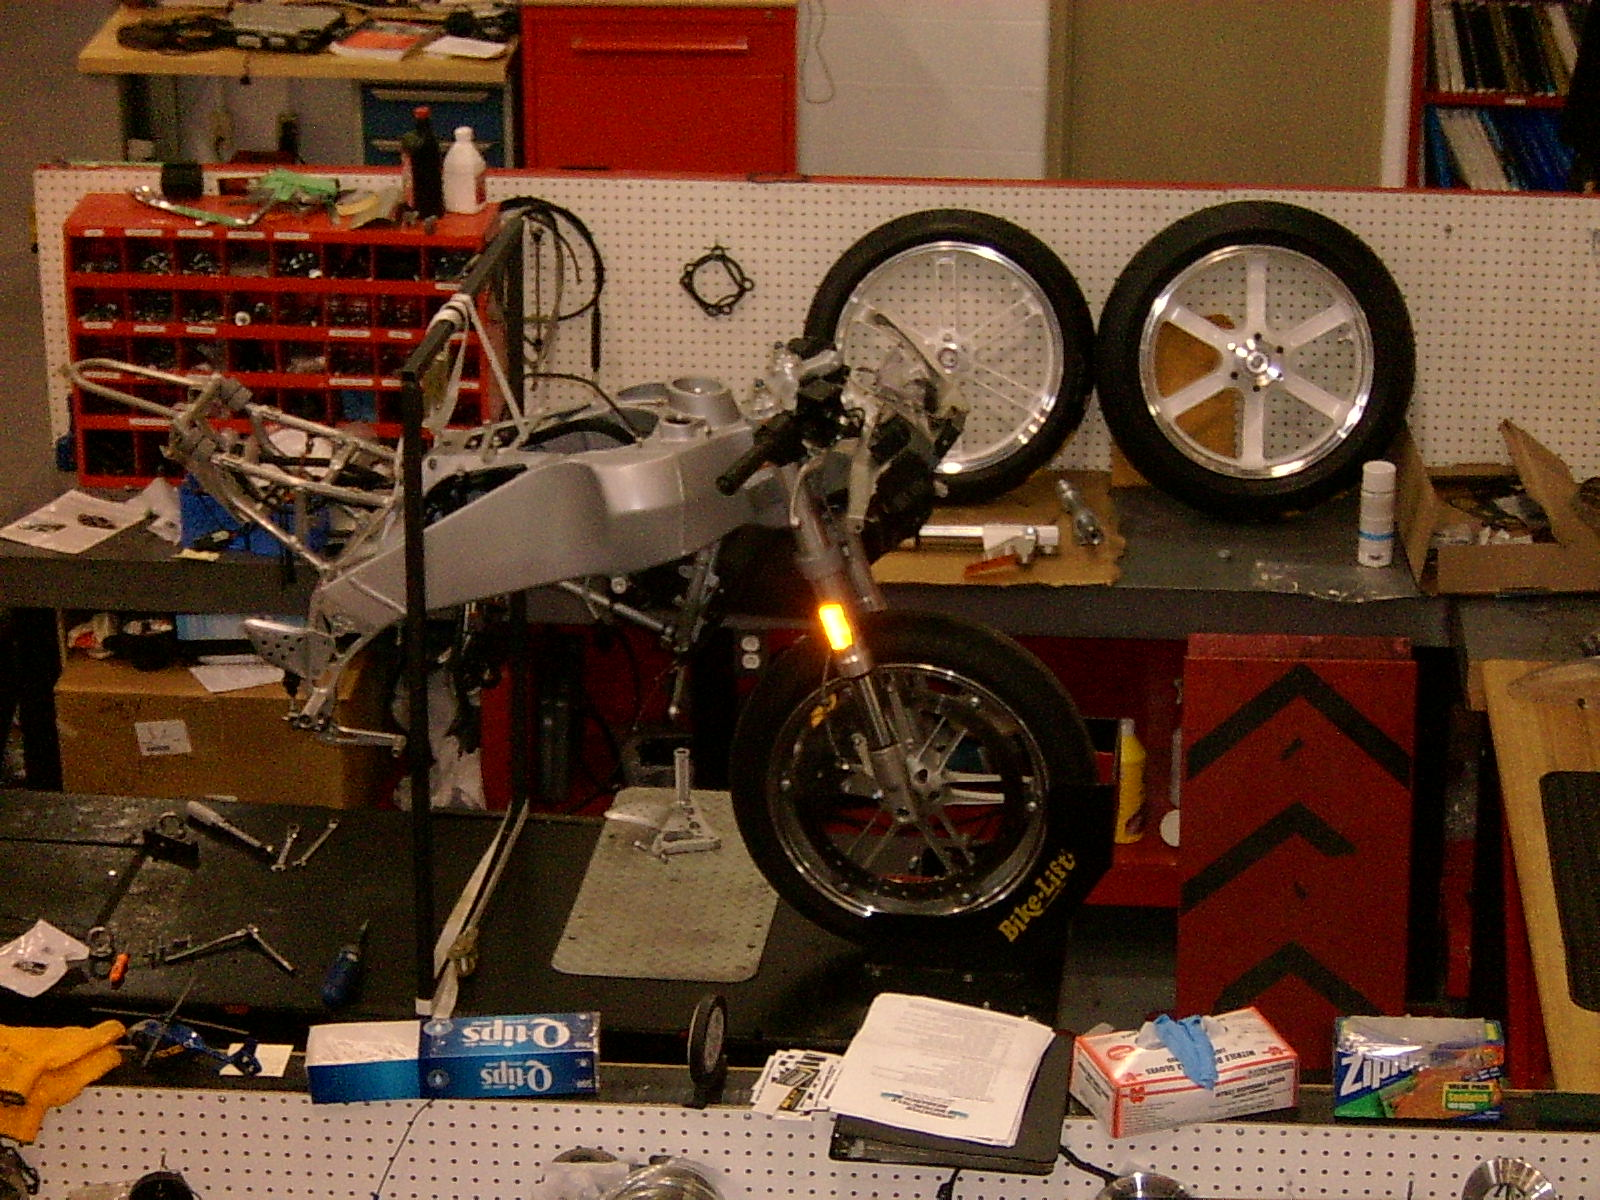 73427d1140322912 what mods do you have your buell brads crap 1038 what mods do you have on your buell? sportbikes net buell firebolt wiring diagram at alyssarenee.co